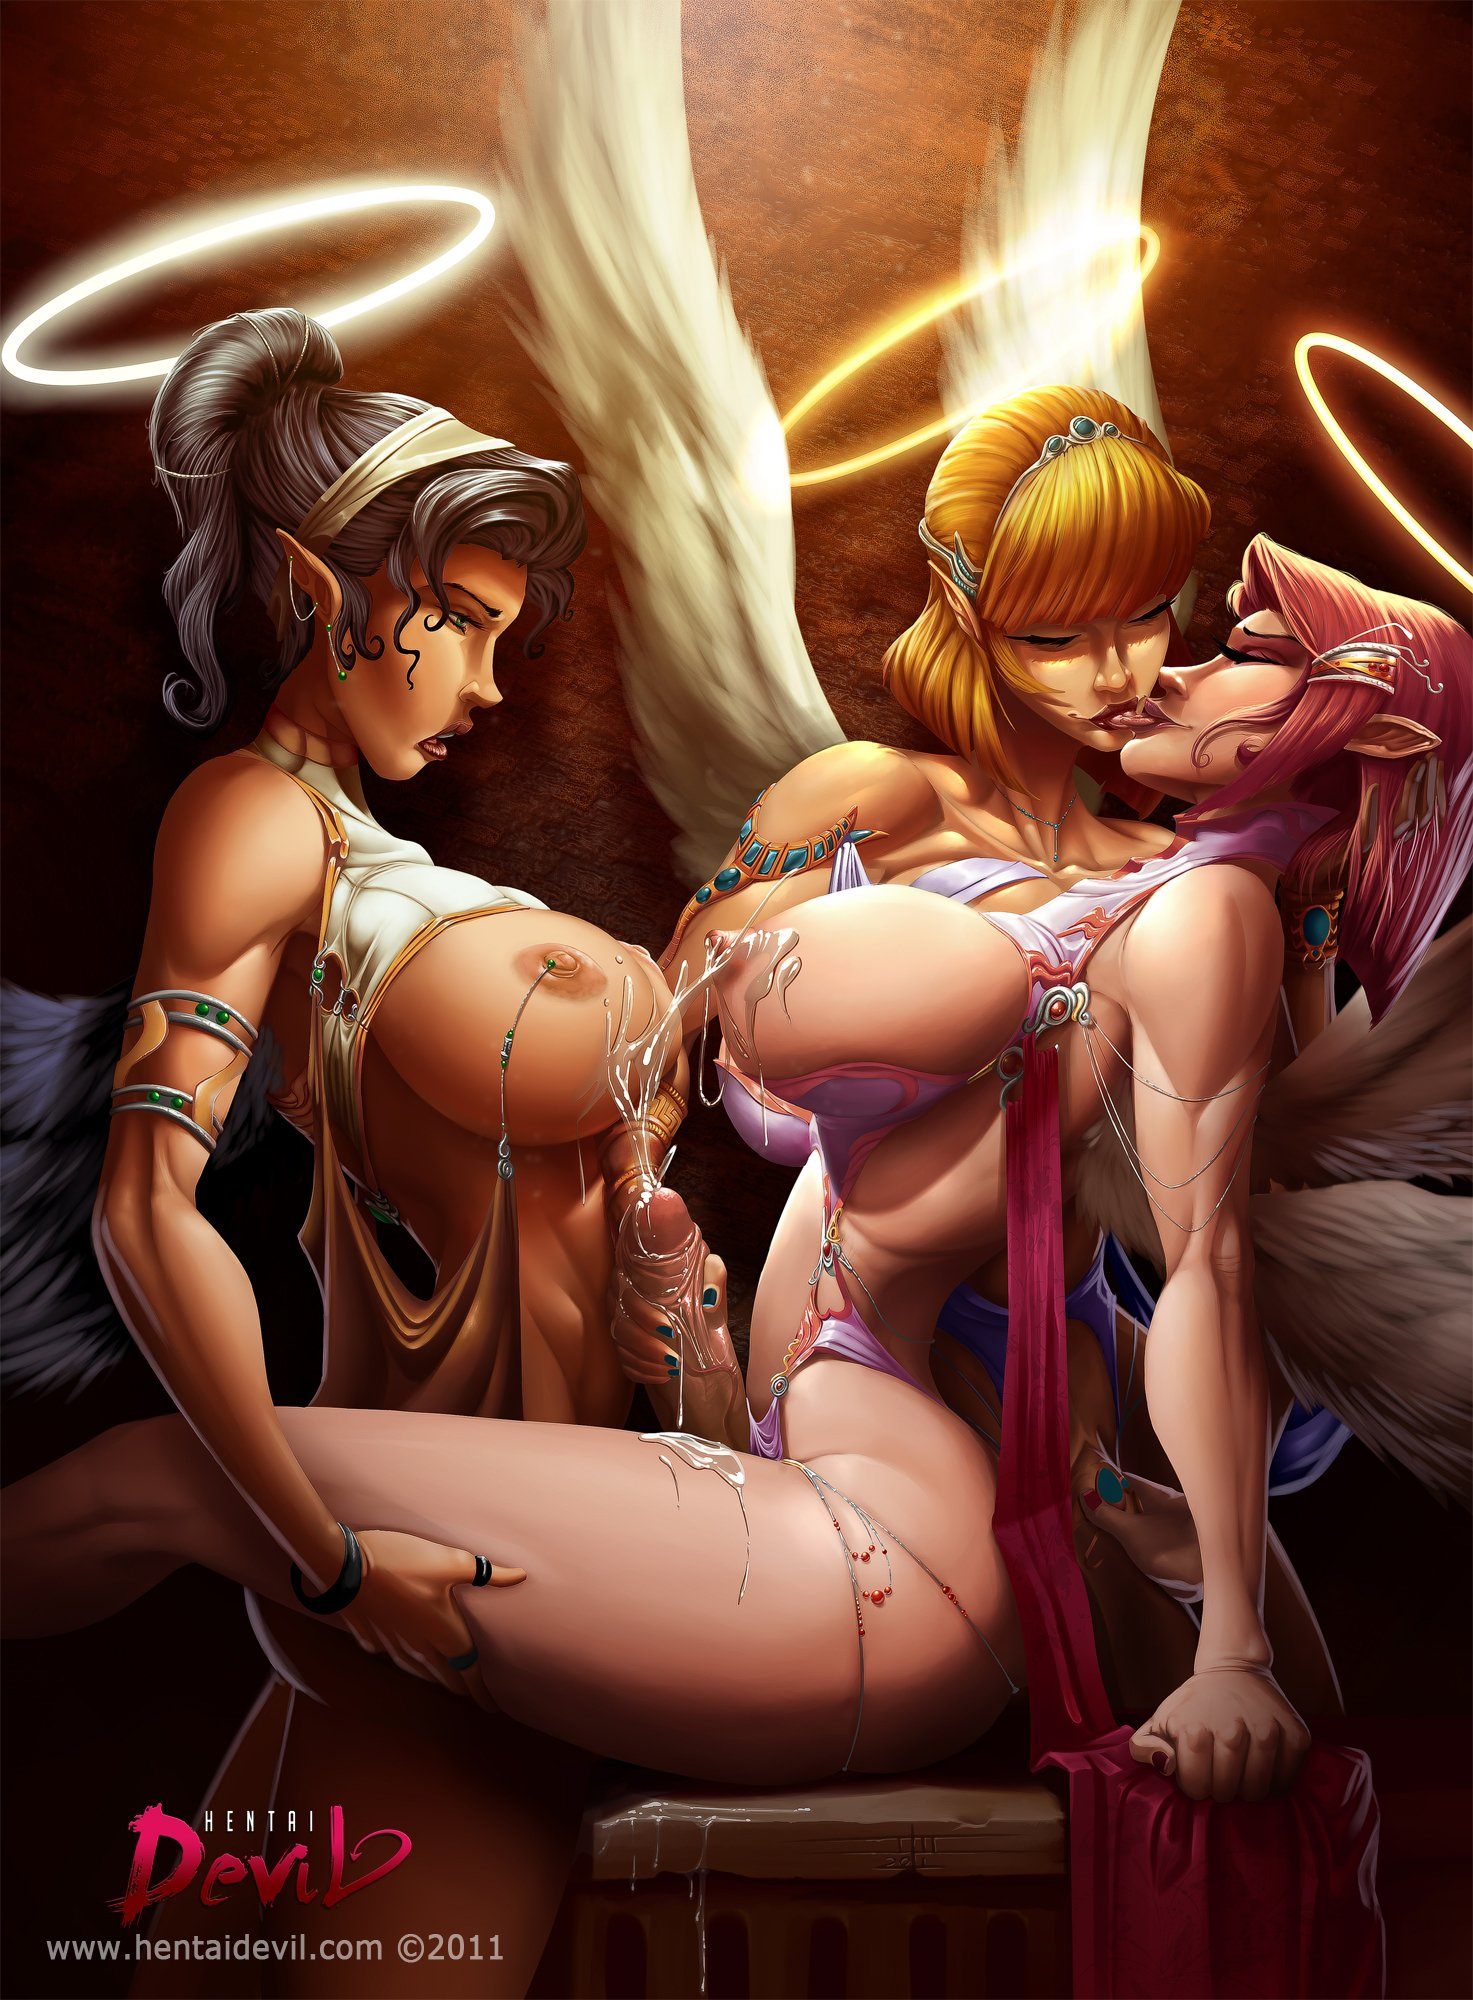 Free videos xxx angels and demons porn comic